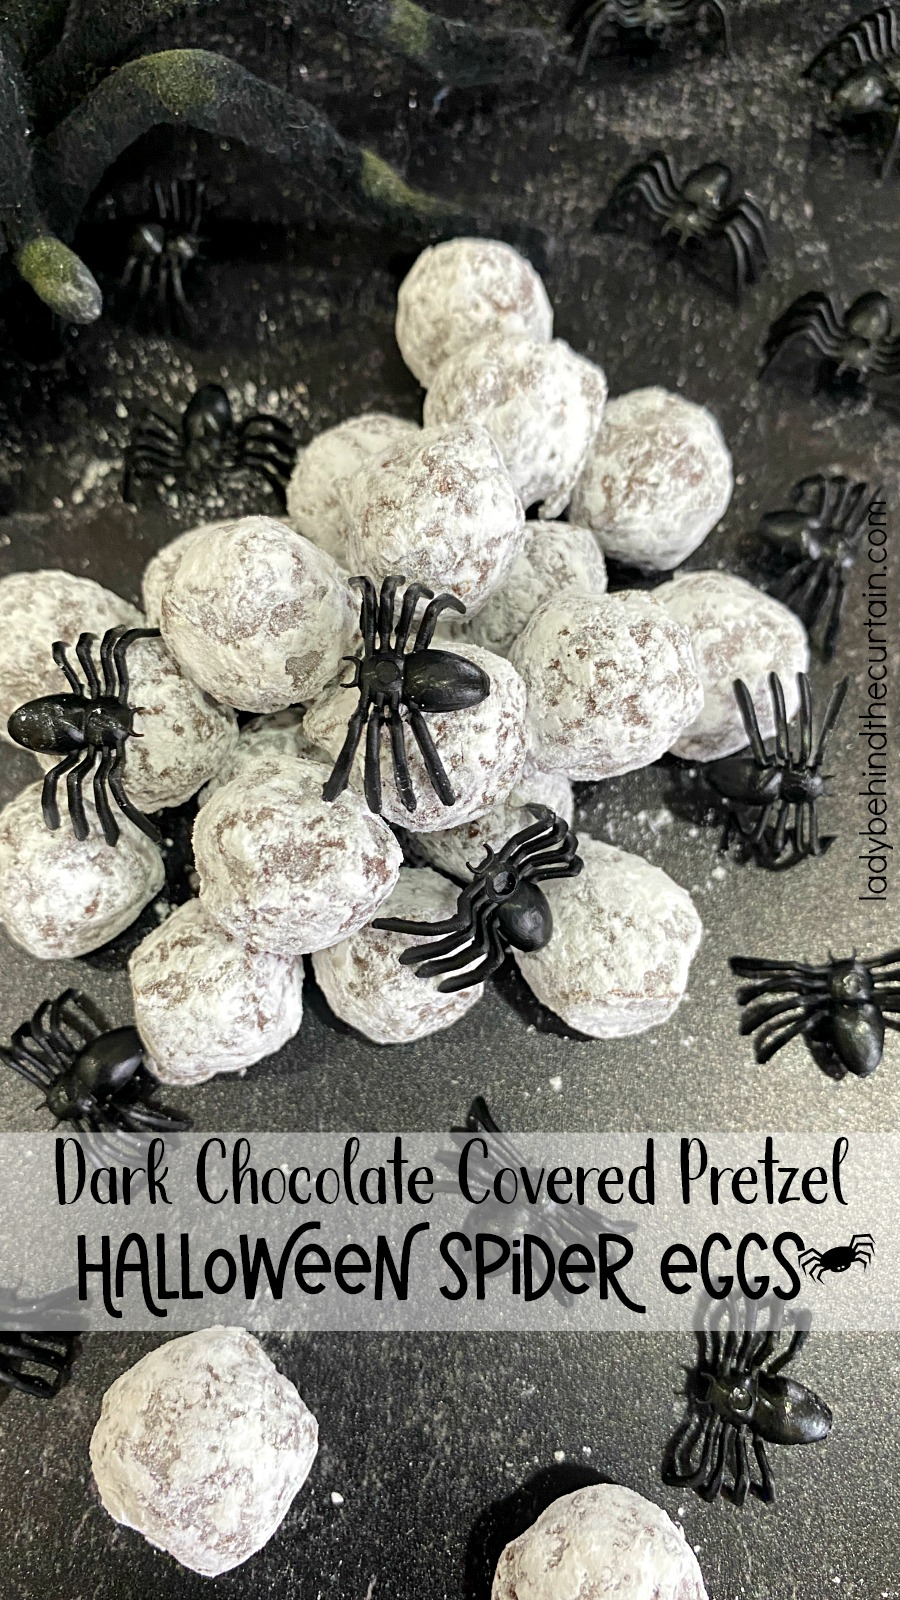 Dark Chocolate Covered Pretzel Halloween Spider Eggs